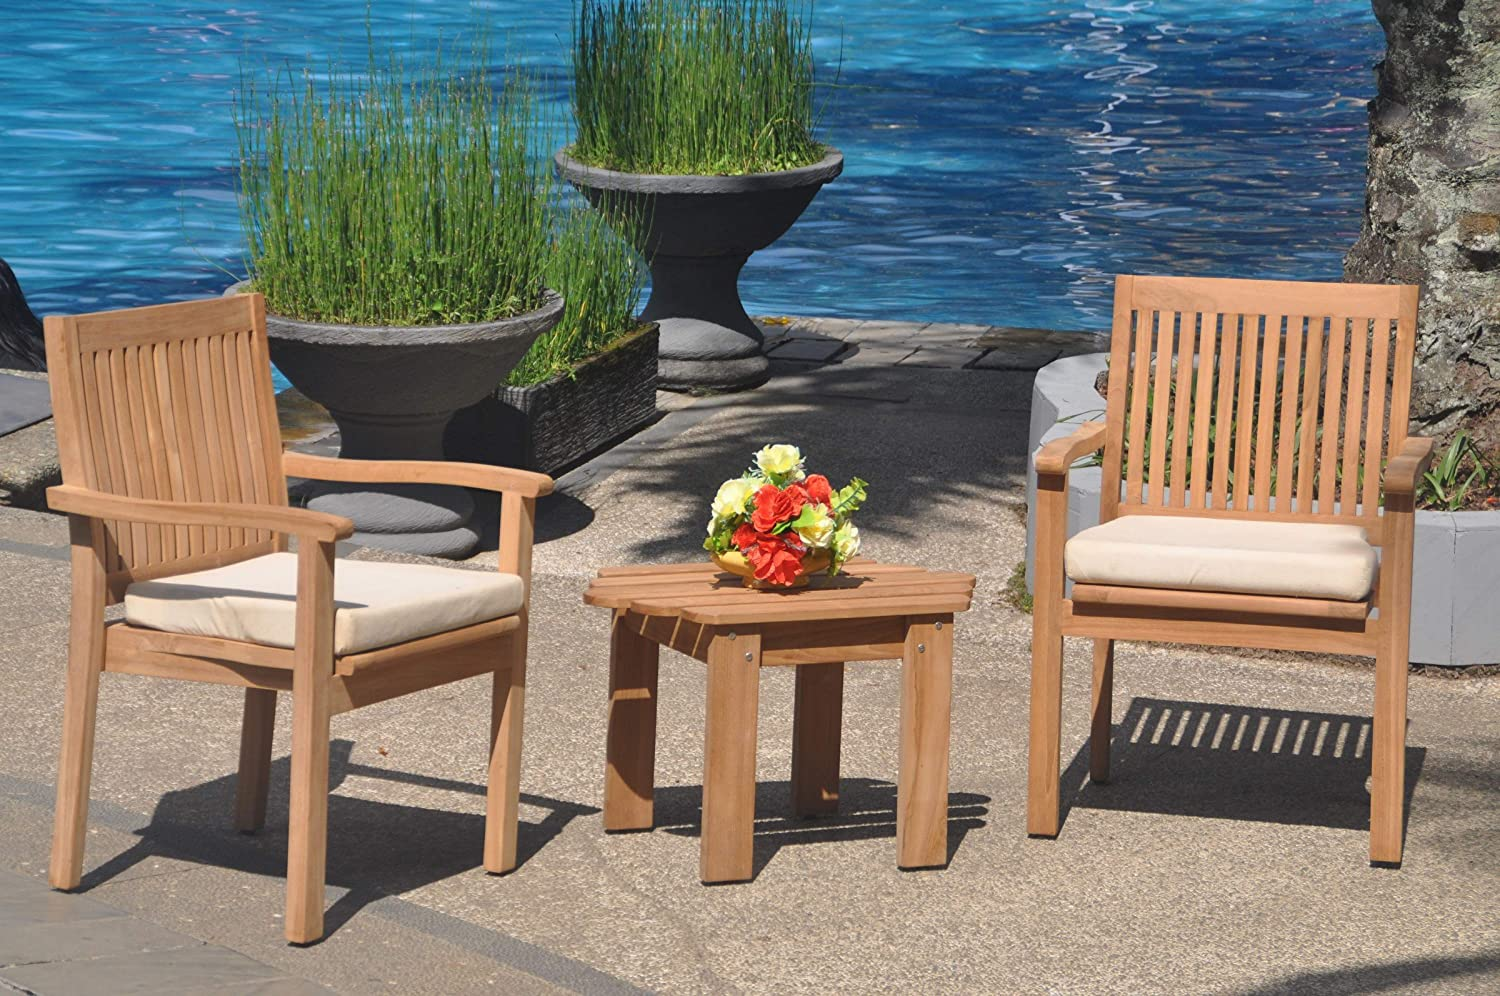 2 Seats 3 Pcs Grade-A Teak Wood Dining Set: Adirondack Side Table and 2 Leveb Stacking Arm Chairs #WHDSLV10